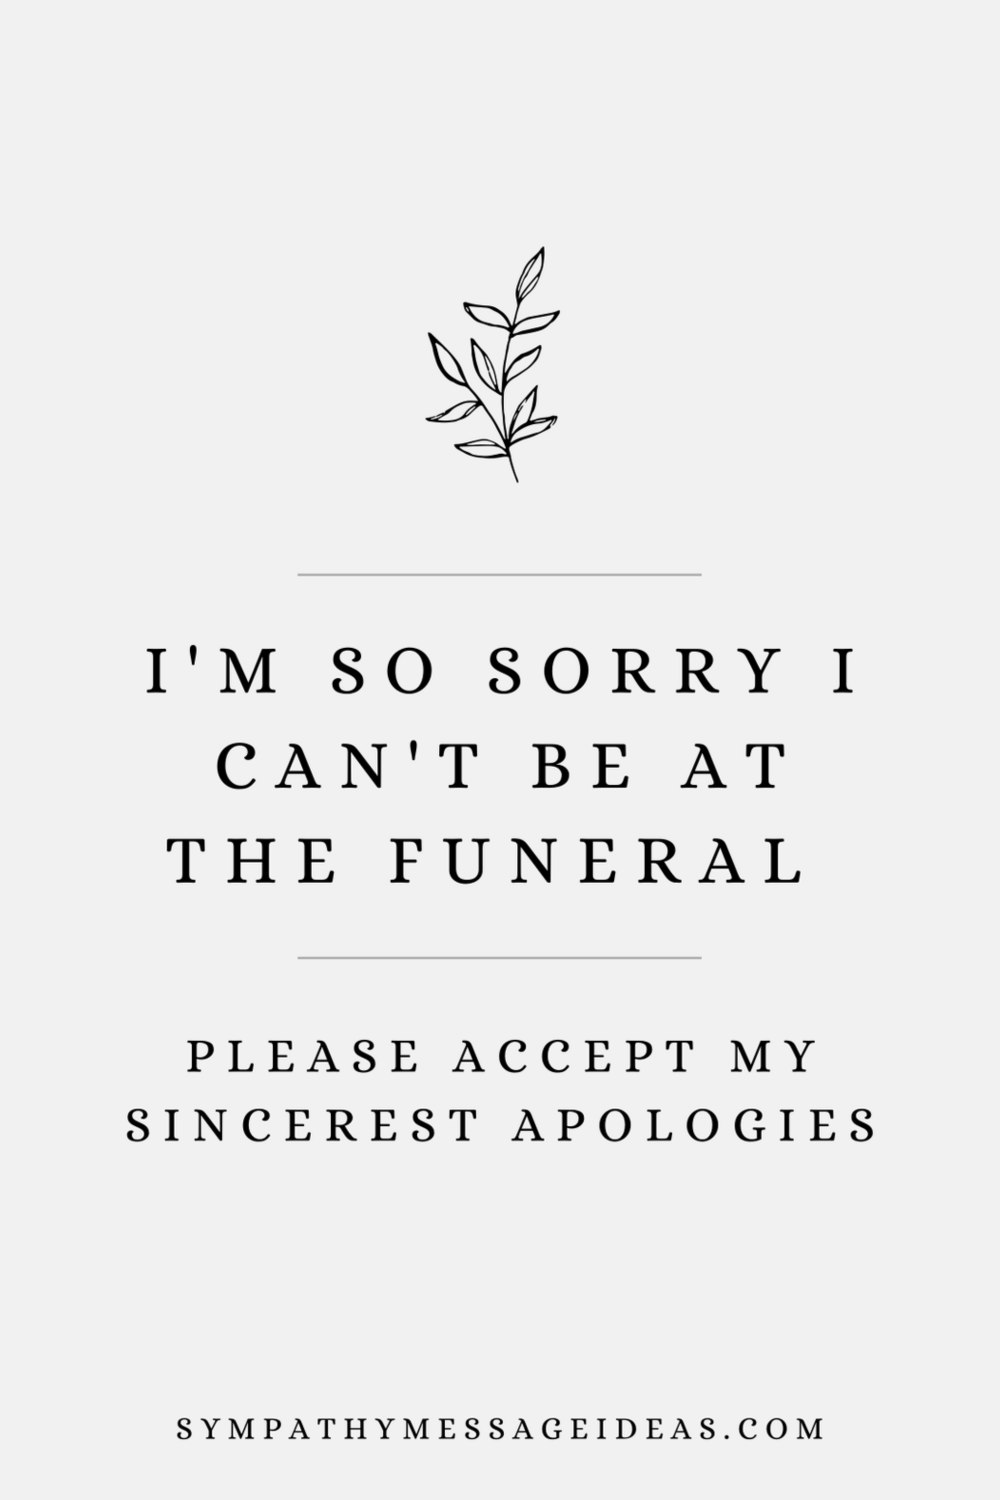 sorry I can't be at the funeral message